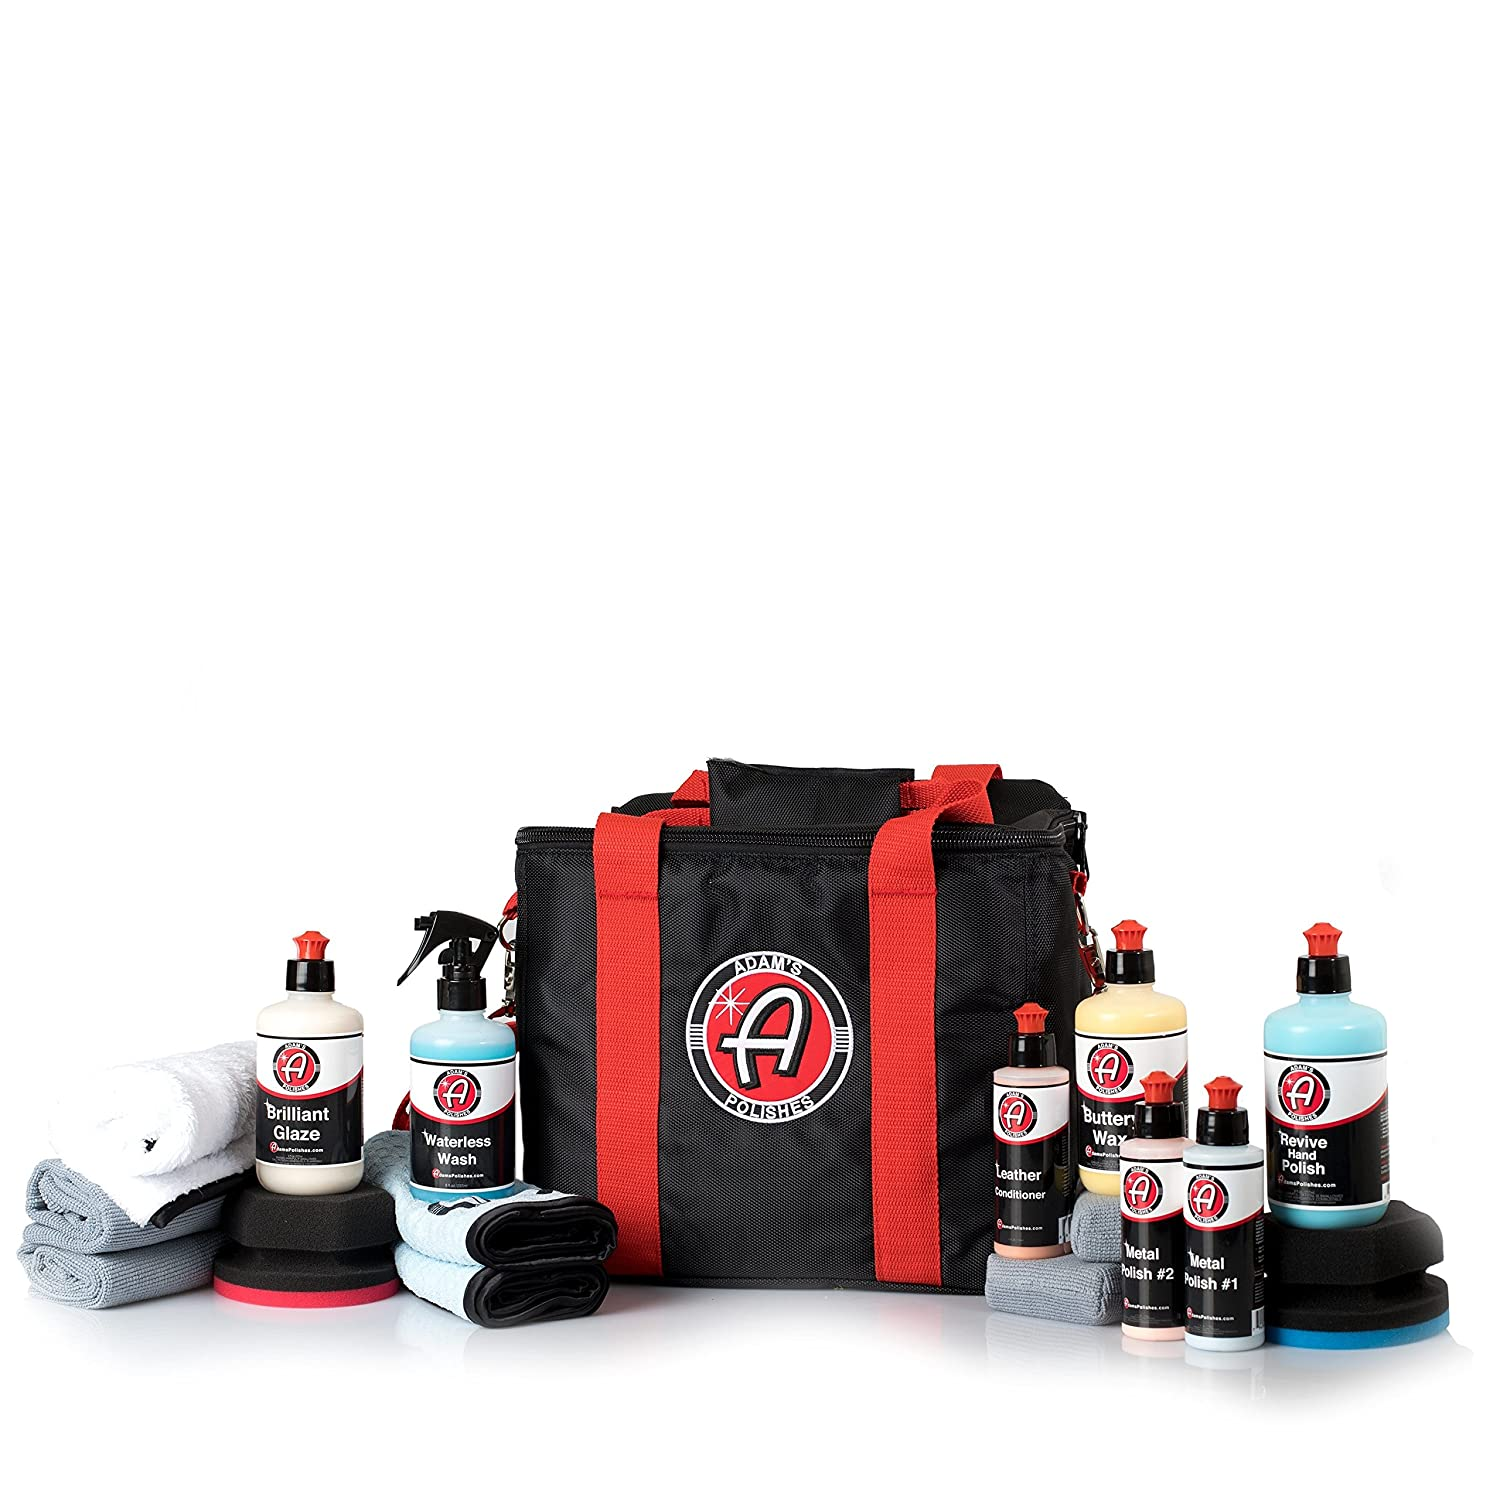 Adam's Motorcycle Detailing Kit - Clean, Shine, and Protect Your Bike - Specially Designed For Motorcycle Detailing Adam' s Polishes